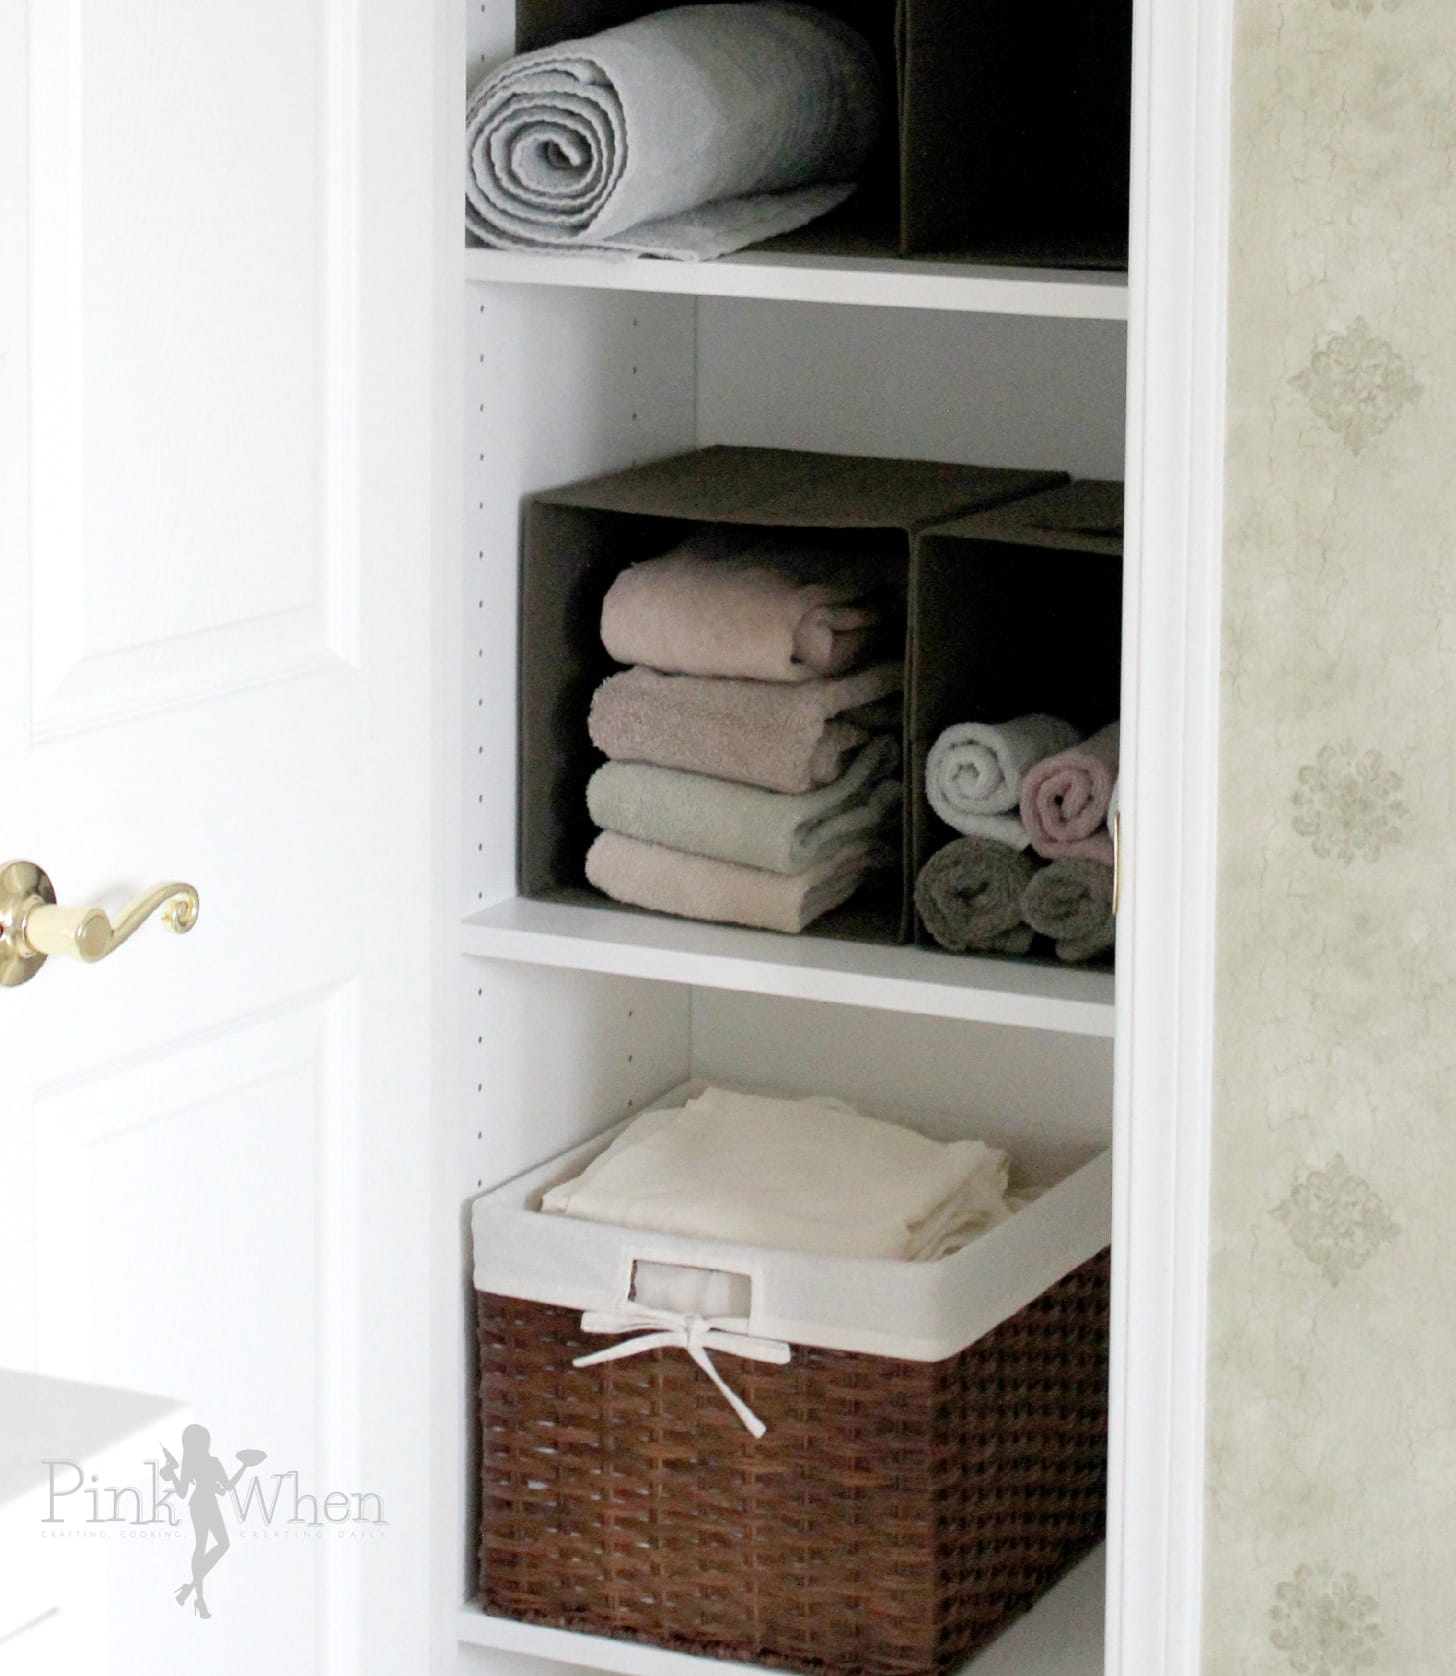 Spring Cleaning And Closet Organization Pinkwhen